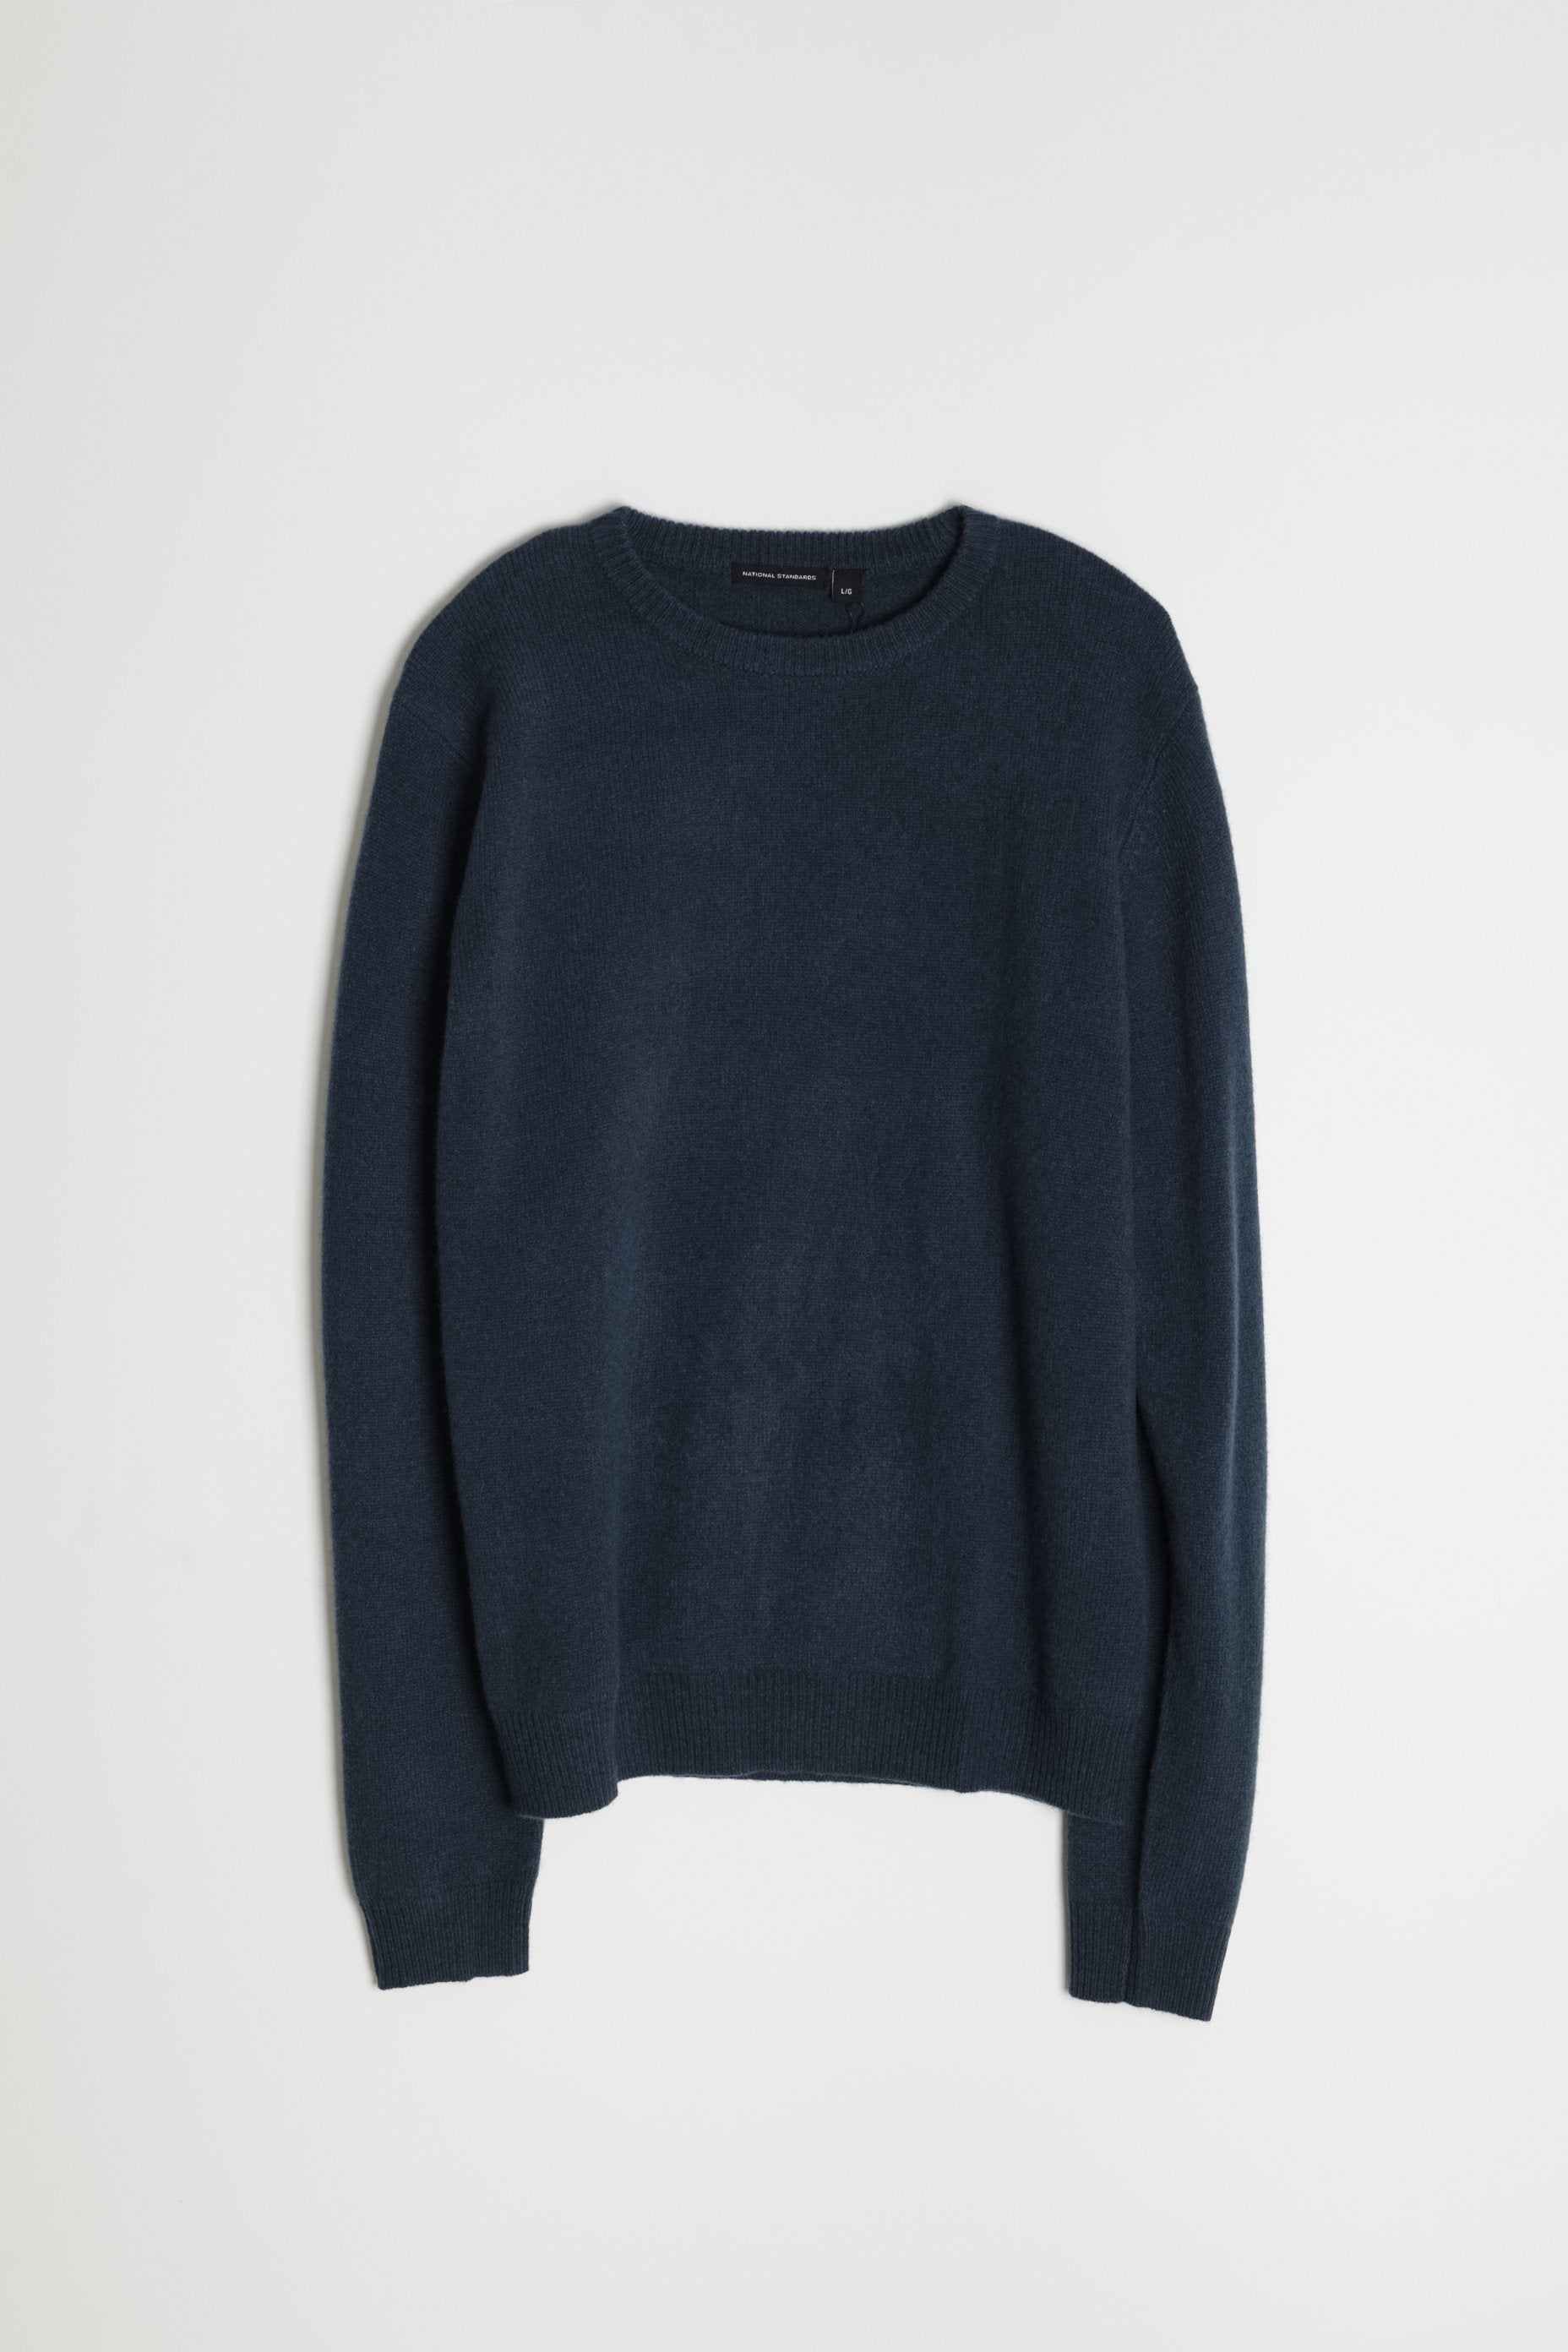 New Wool Crew Neck in Blue 05